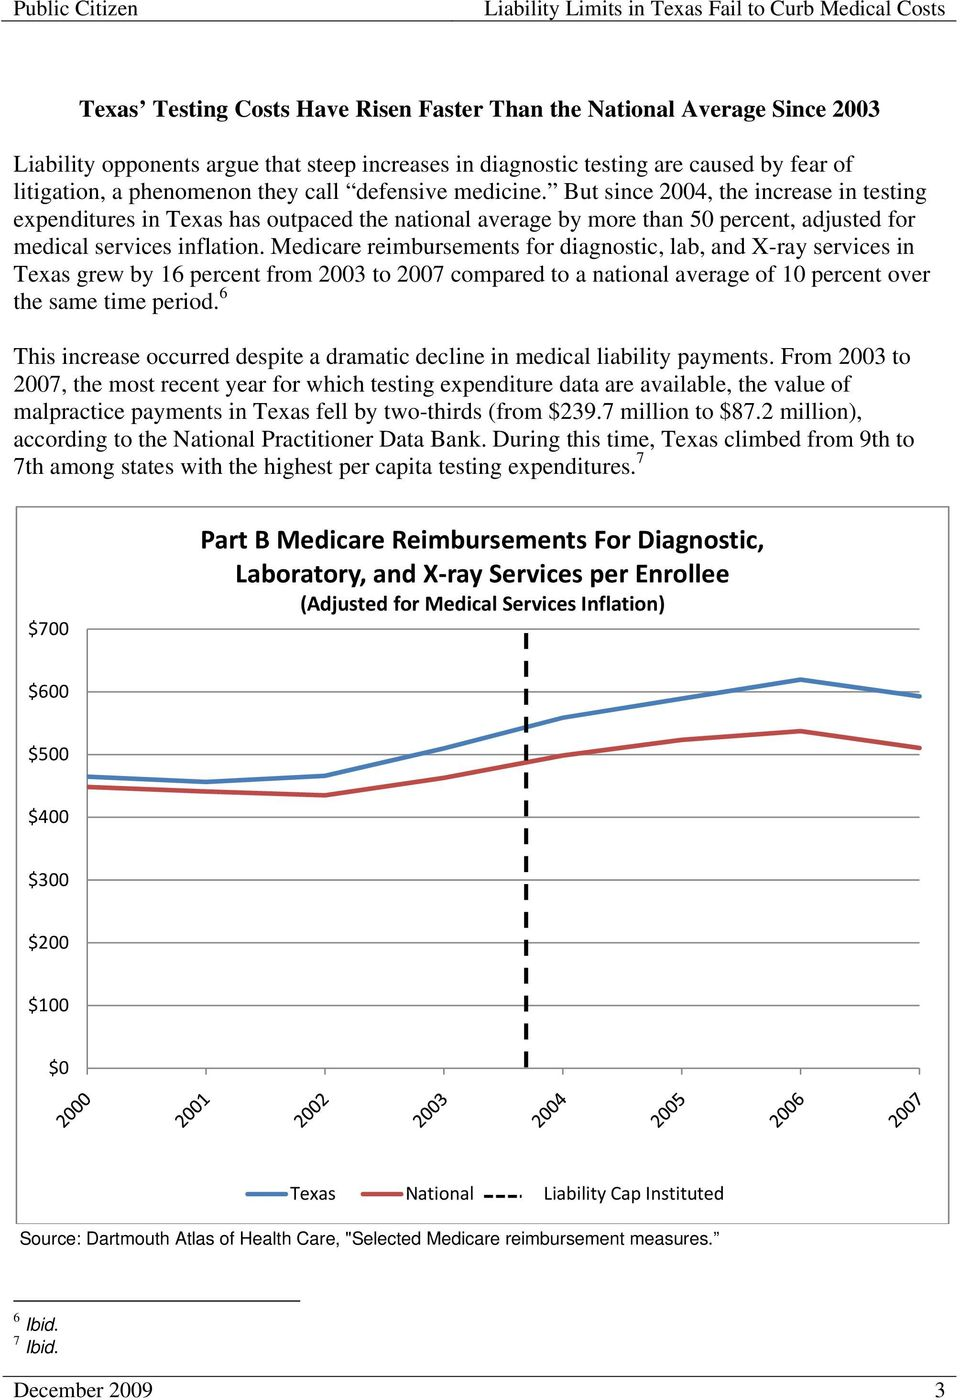 Medicare reimbursements for diagnostic, lab, and X-ray services in Texas grew by 16 percent from 2003 to 2007 compared to a national average of 10 percent over the same time period.